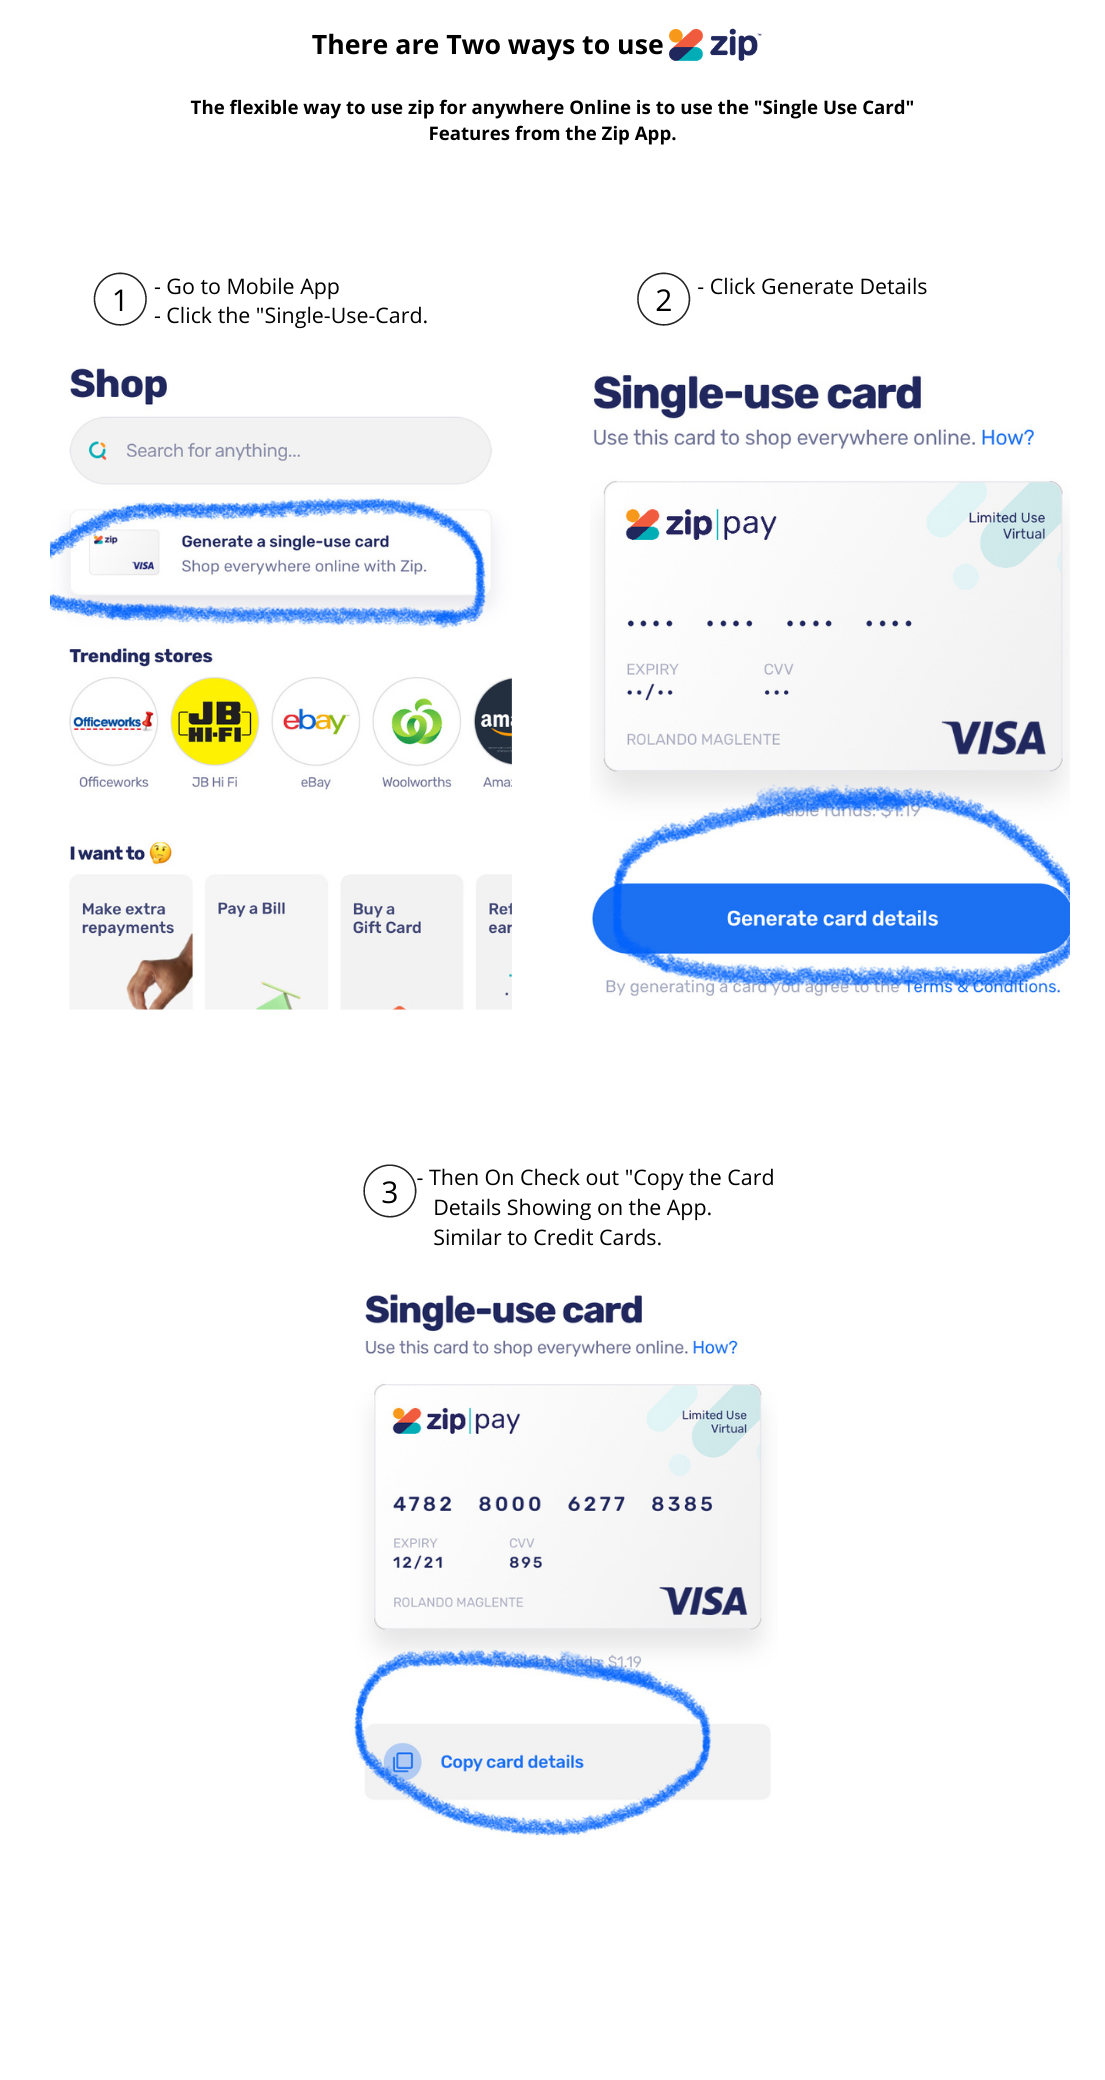 how to use zip using single use card